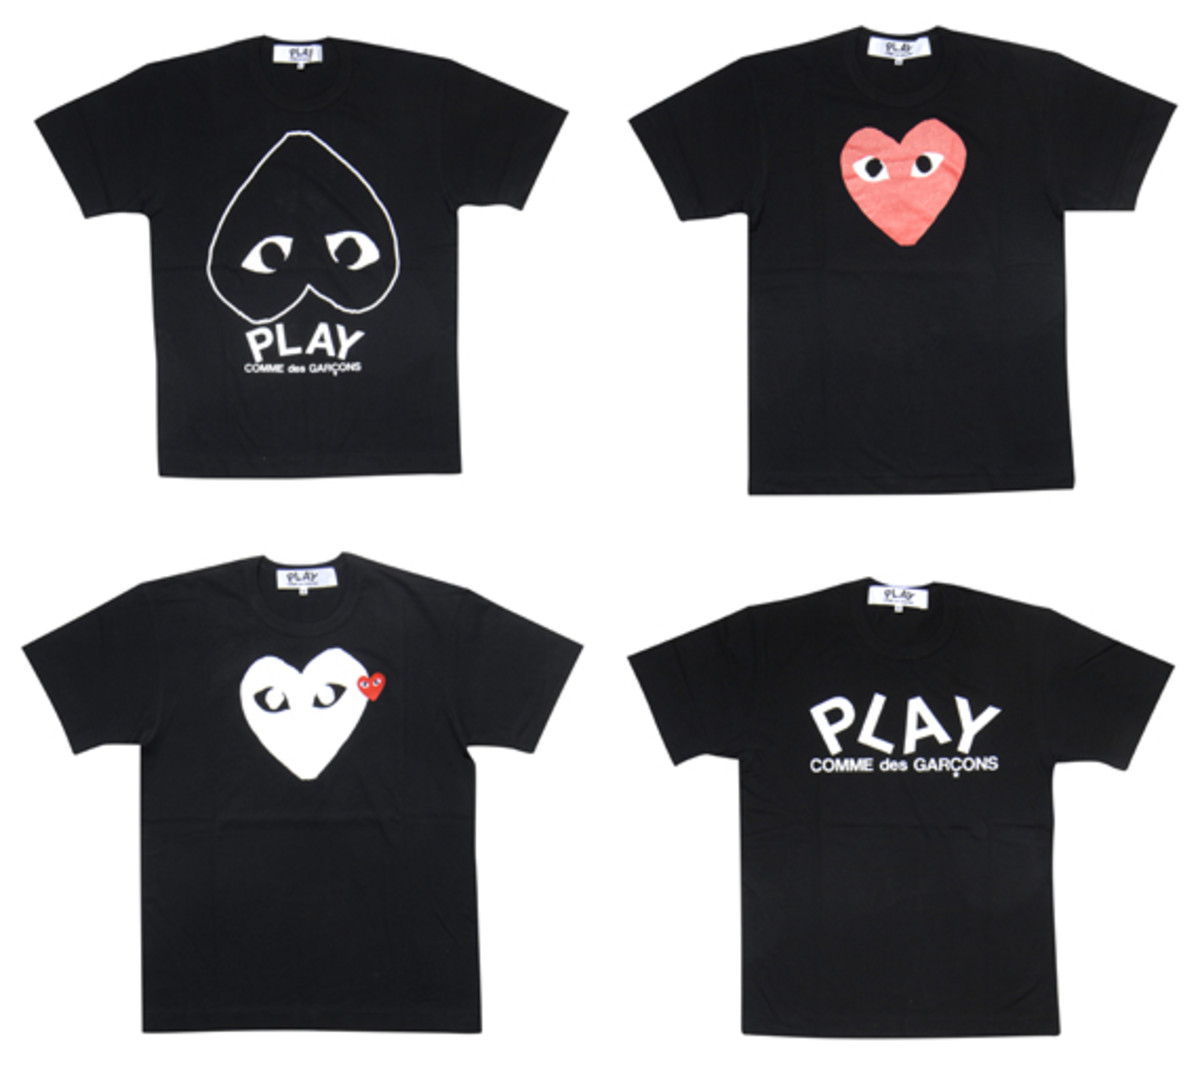 efff25b18168 COMME des GARçONS PLAY BOX x EXI.T - Collaboration T-Shirts - Freshness Mag